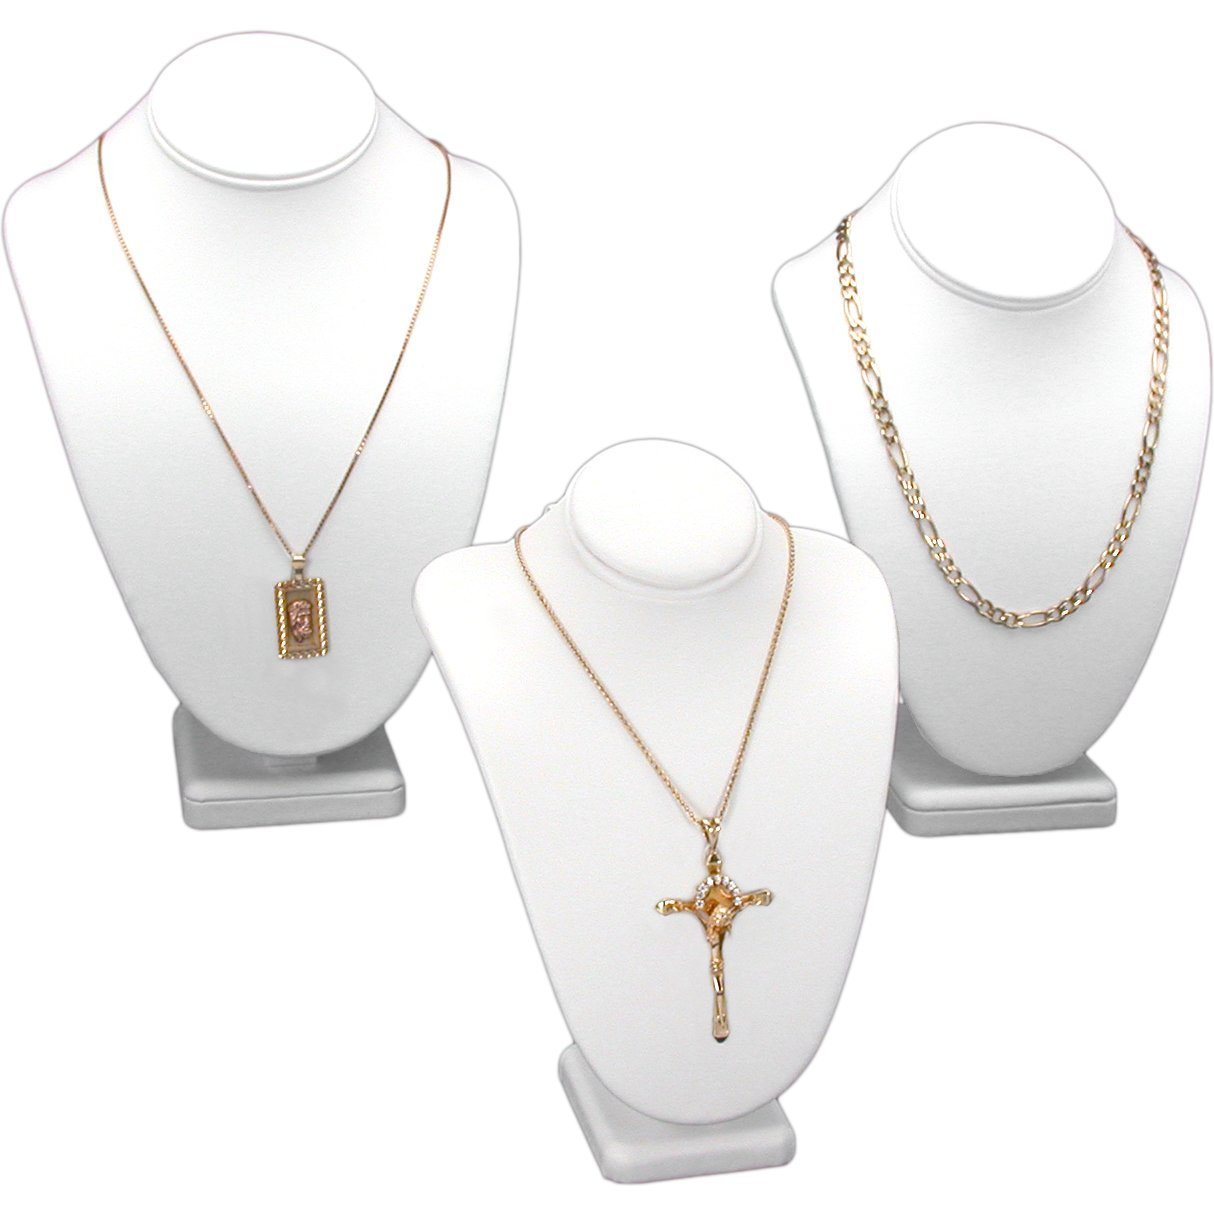 3Pc White Necklace Chain Jewelry Display Bust 11 New KIT-10387